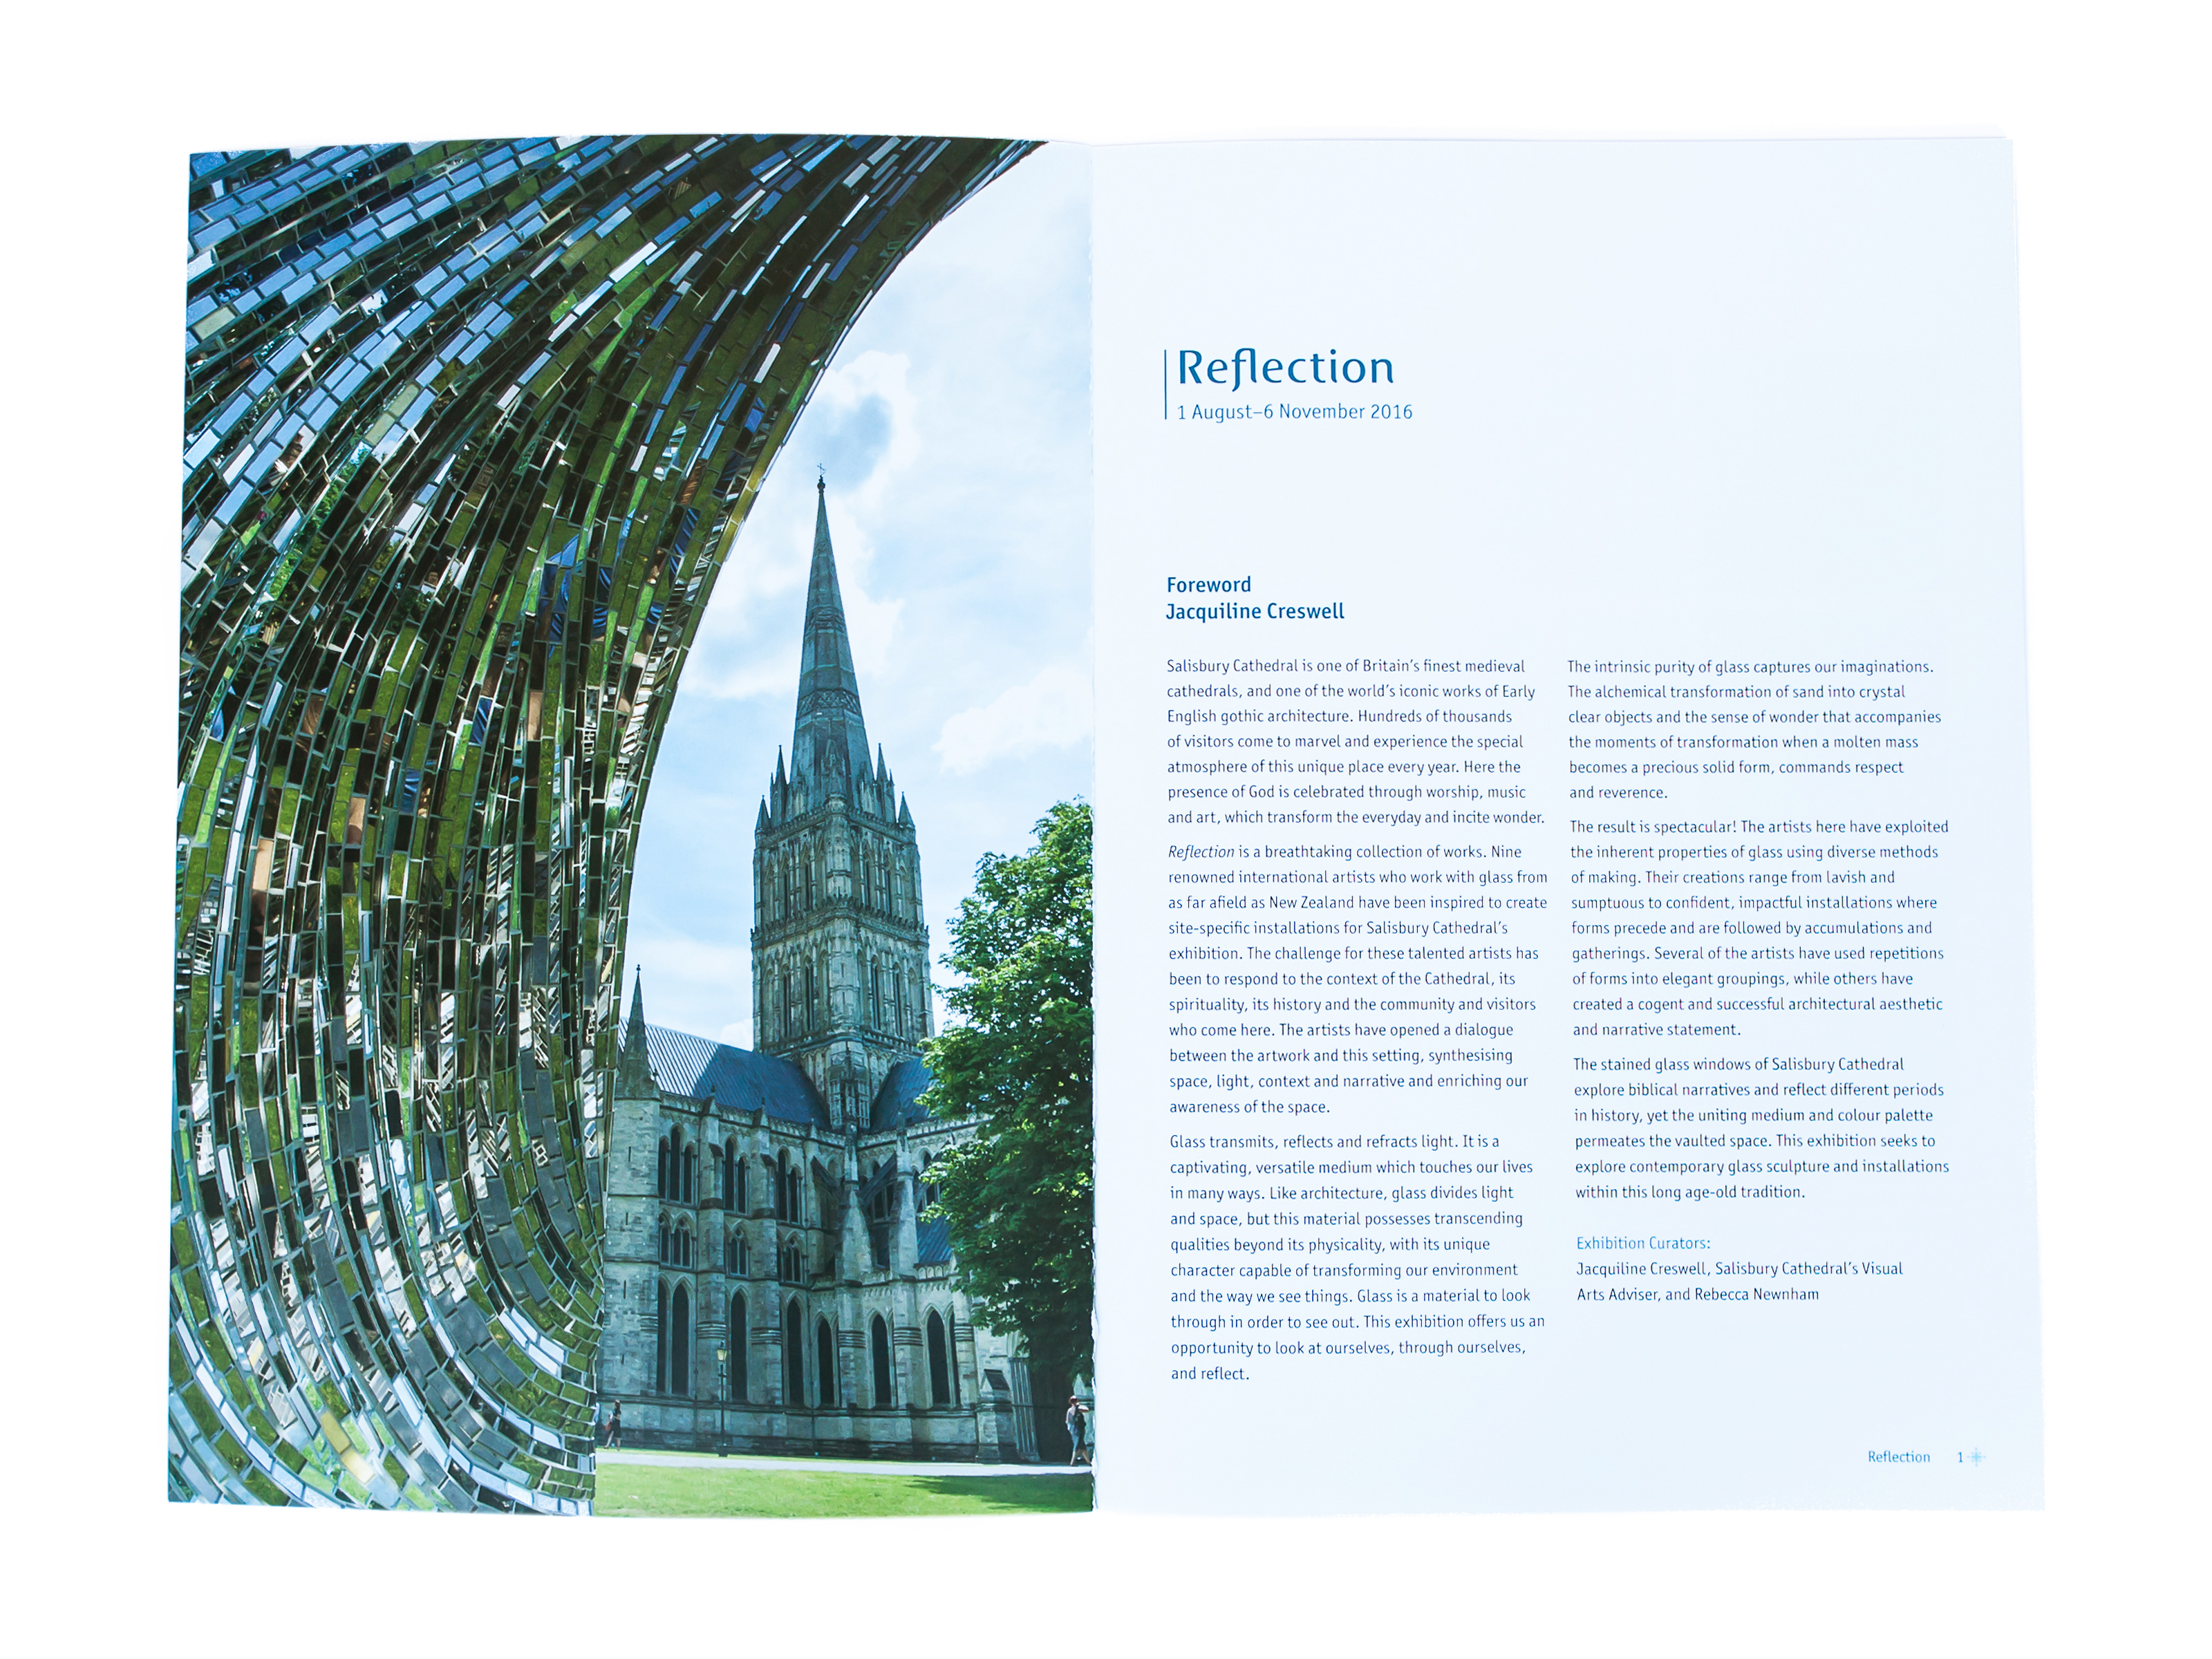 Reflection introduction